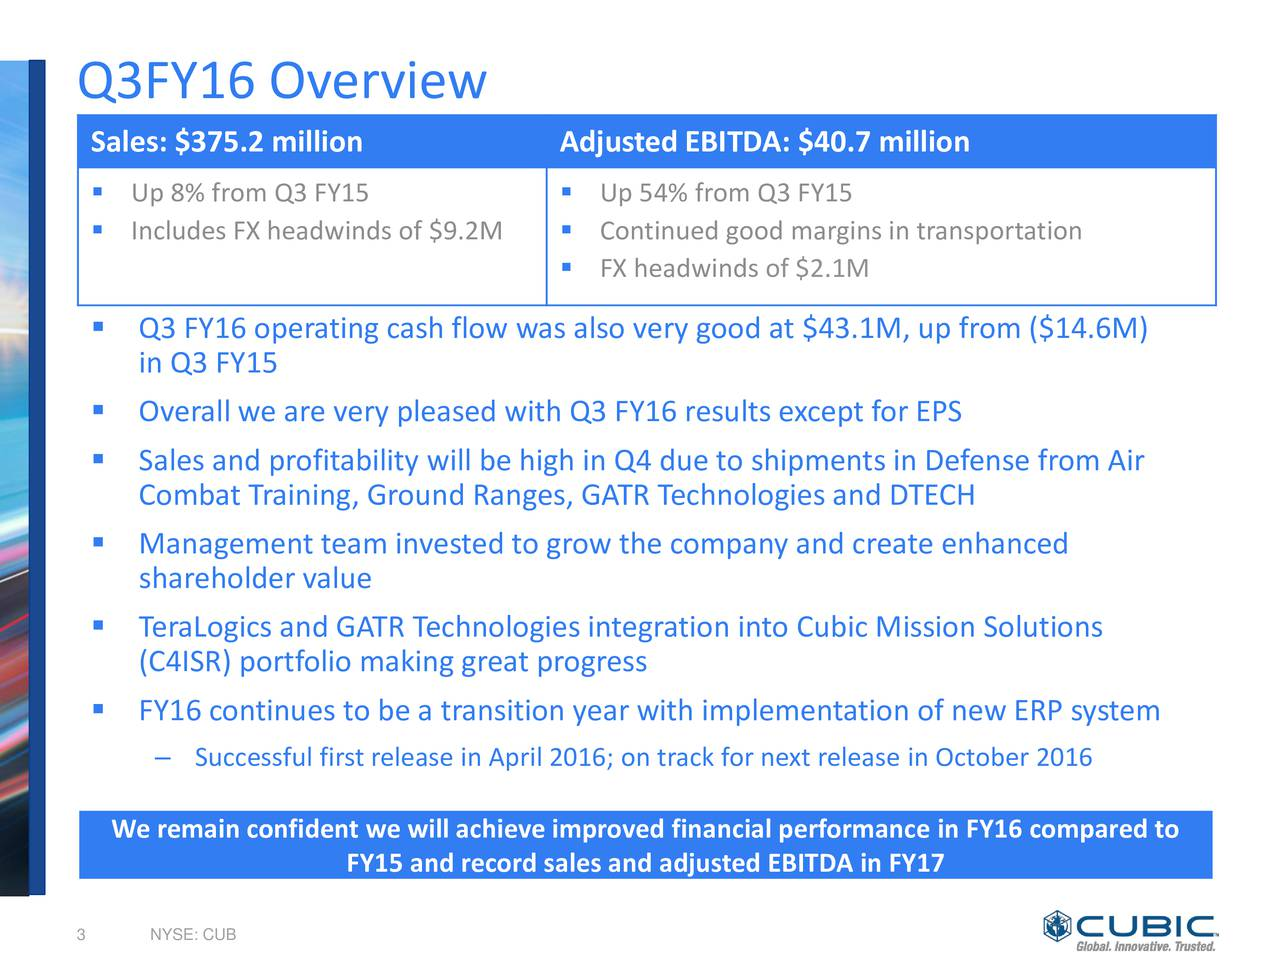 Sales: $375.2 million Adjusted EBITDA: $40.7 million Up 8% from Q3 FY15  Up 54% from Q3 FY15 Includes FX headwinds of $9.2M  Continued good margins in transportation FX headwinds of $2.1M Q3 FY16 operating cash flow was also very good at $43.1M, up from ($14.6M) in Q3 FY15 Overall we are very pleased with Q3 FY16 results except for EPS Sales and profitability will be high in Q4 due to shipments in Defense from Air Combat Training, Ground Ranges, GATR Technologies and DTECH Management team invested to grow the company and create enhanced shareholder value TeraLogics and GATR Technologies integration into Cubic Mission Solutions (C4ISR) portfolio making great progress FY16 continues to be a transition year with implementation of new ERP system Successful first release in April 2016; on track for next release in October 2016 We remain confident we will achieve improved financial performance in FY16 compared to FY15 and record sales and adjusted EBITDA in FY17 3 NYSE: CUB